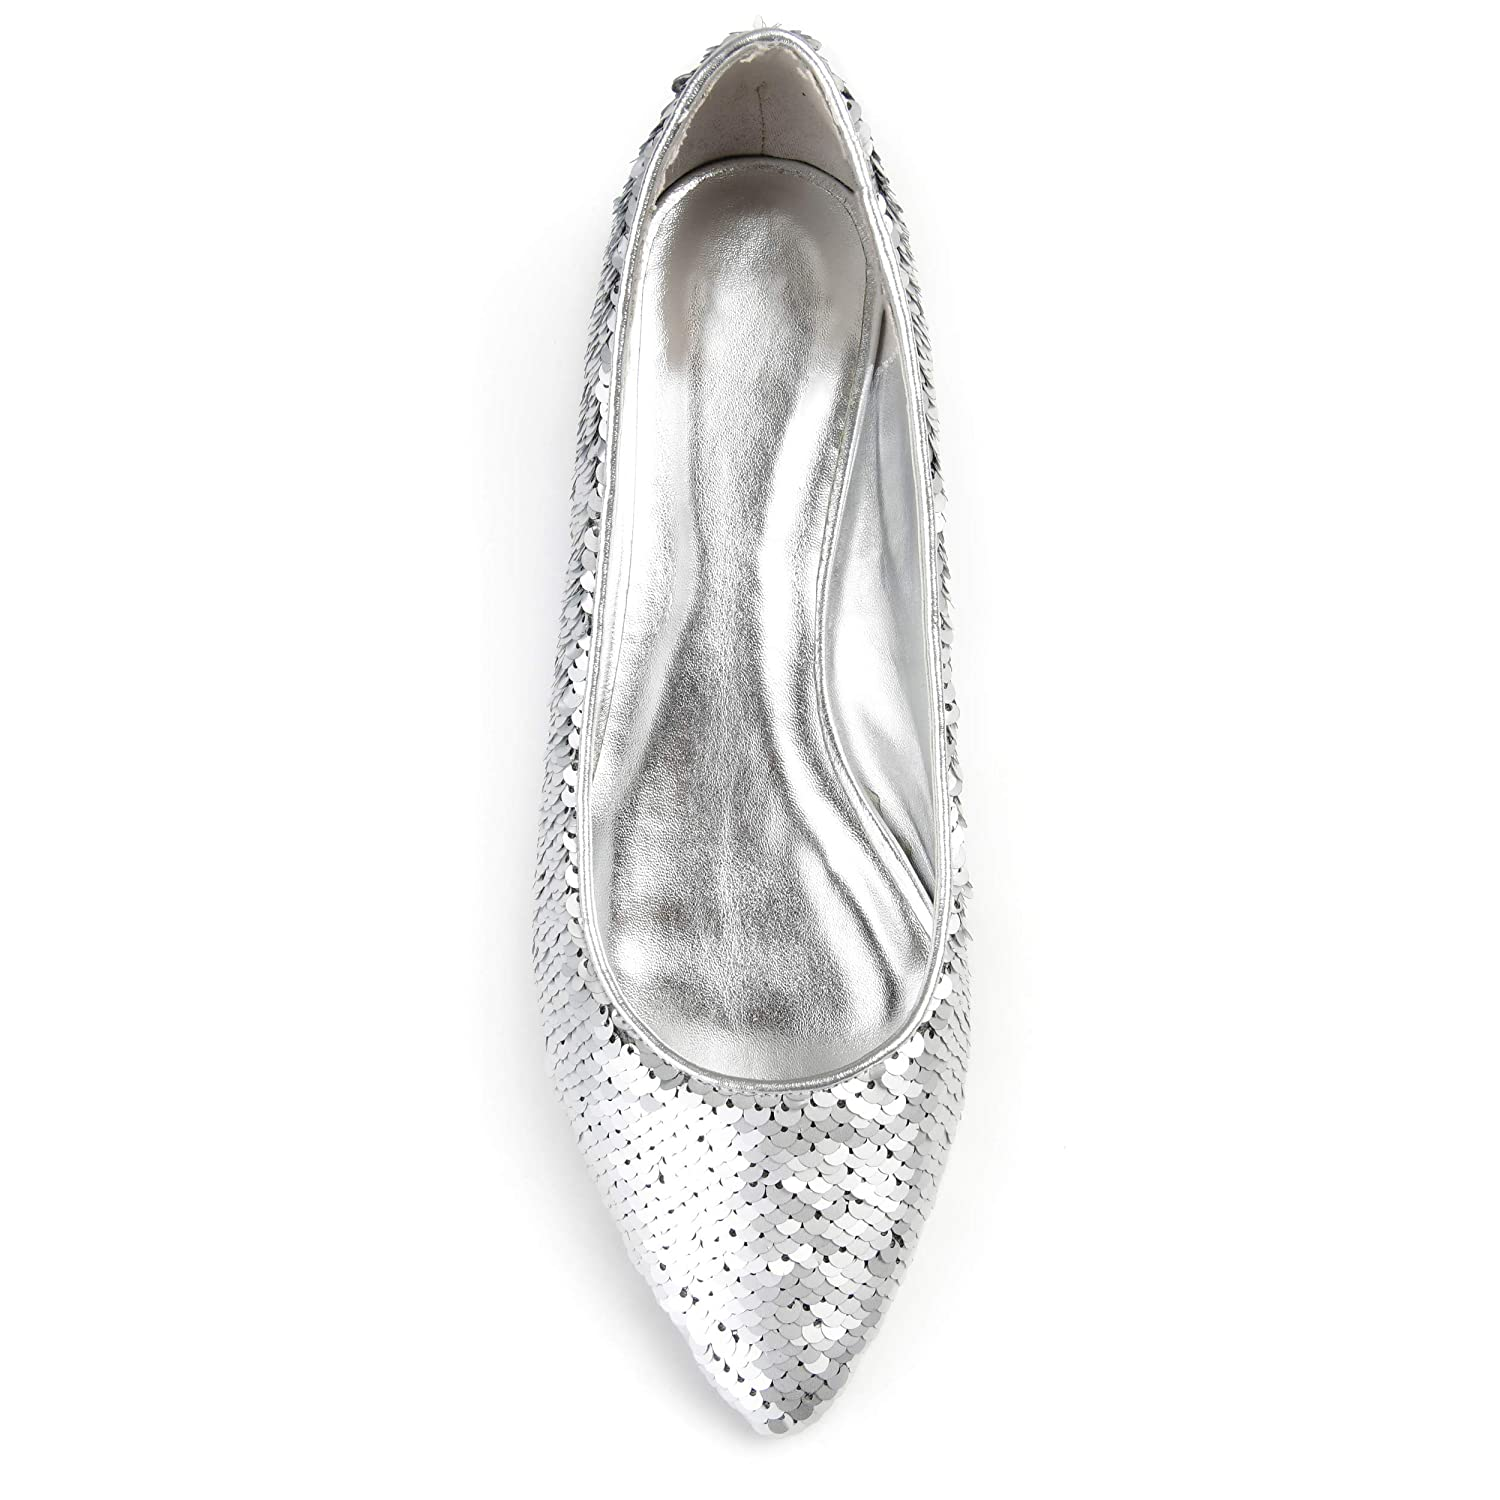 75e0b2abf5058 Brinley Co. Womens Calico Pointed Toe Metallic Sequin Flats